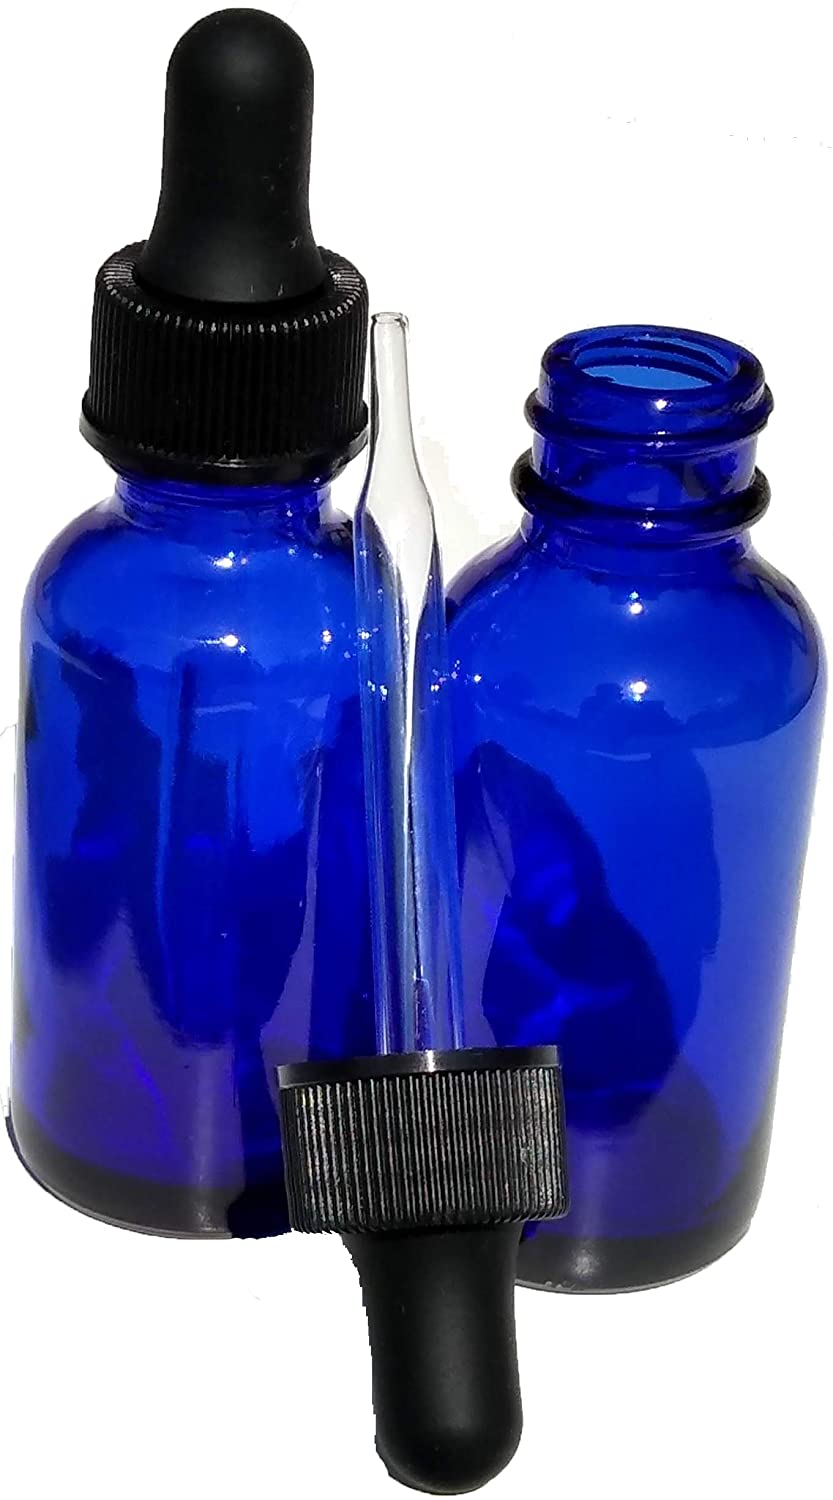 Dropper Stop 1oz Cobalt Blue Glass Dropper Bottles (30mL) with Tapered Glass Droppers - Pack of 2